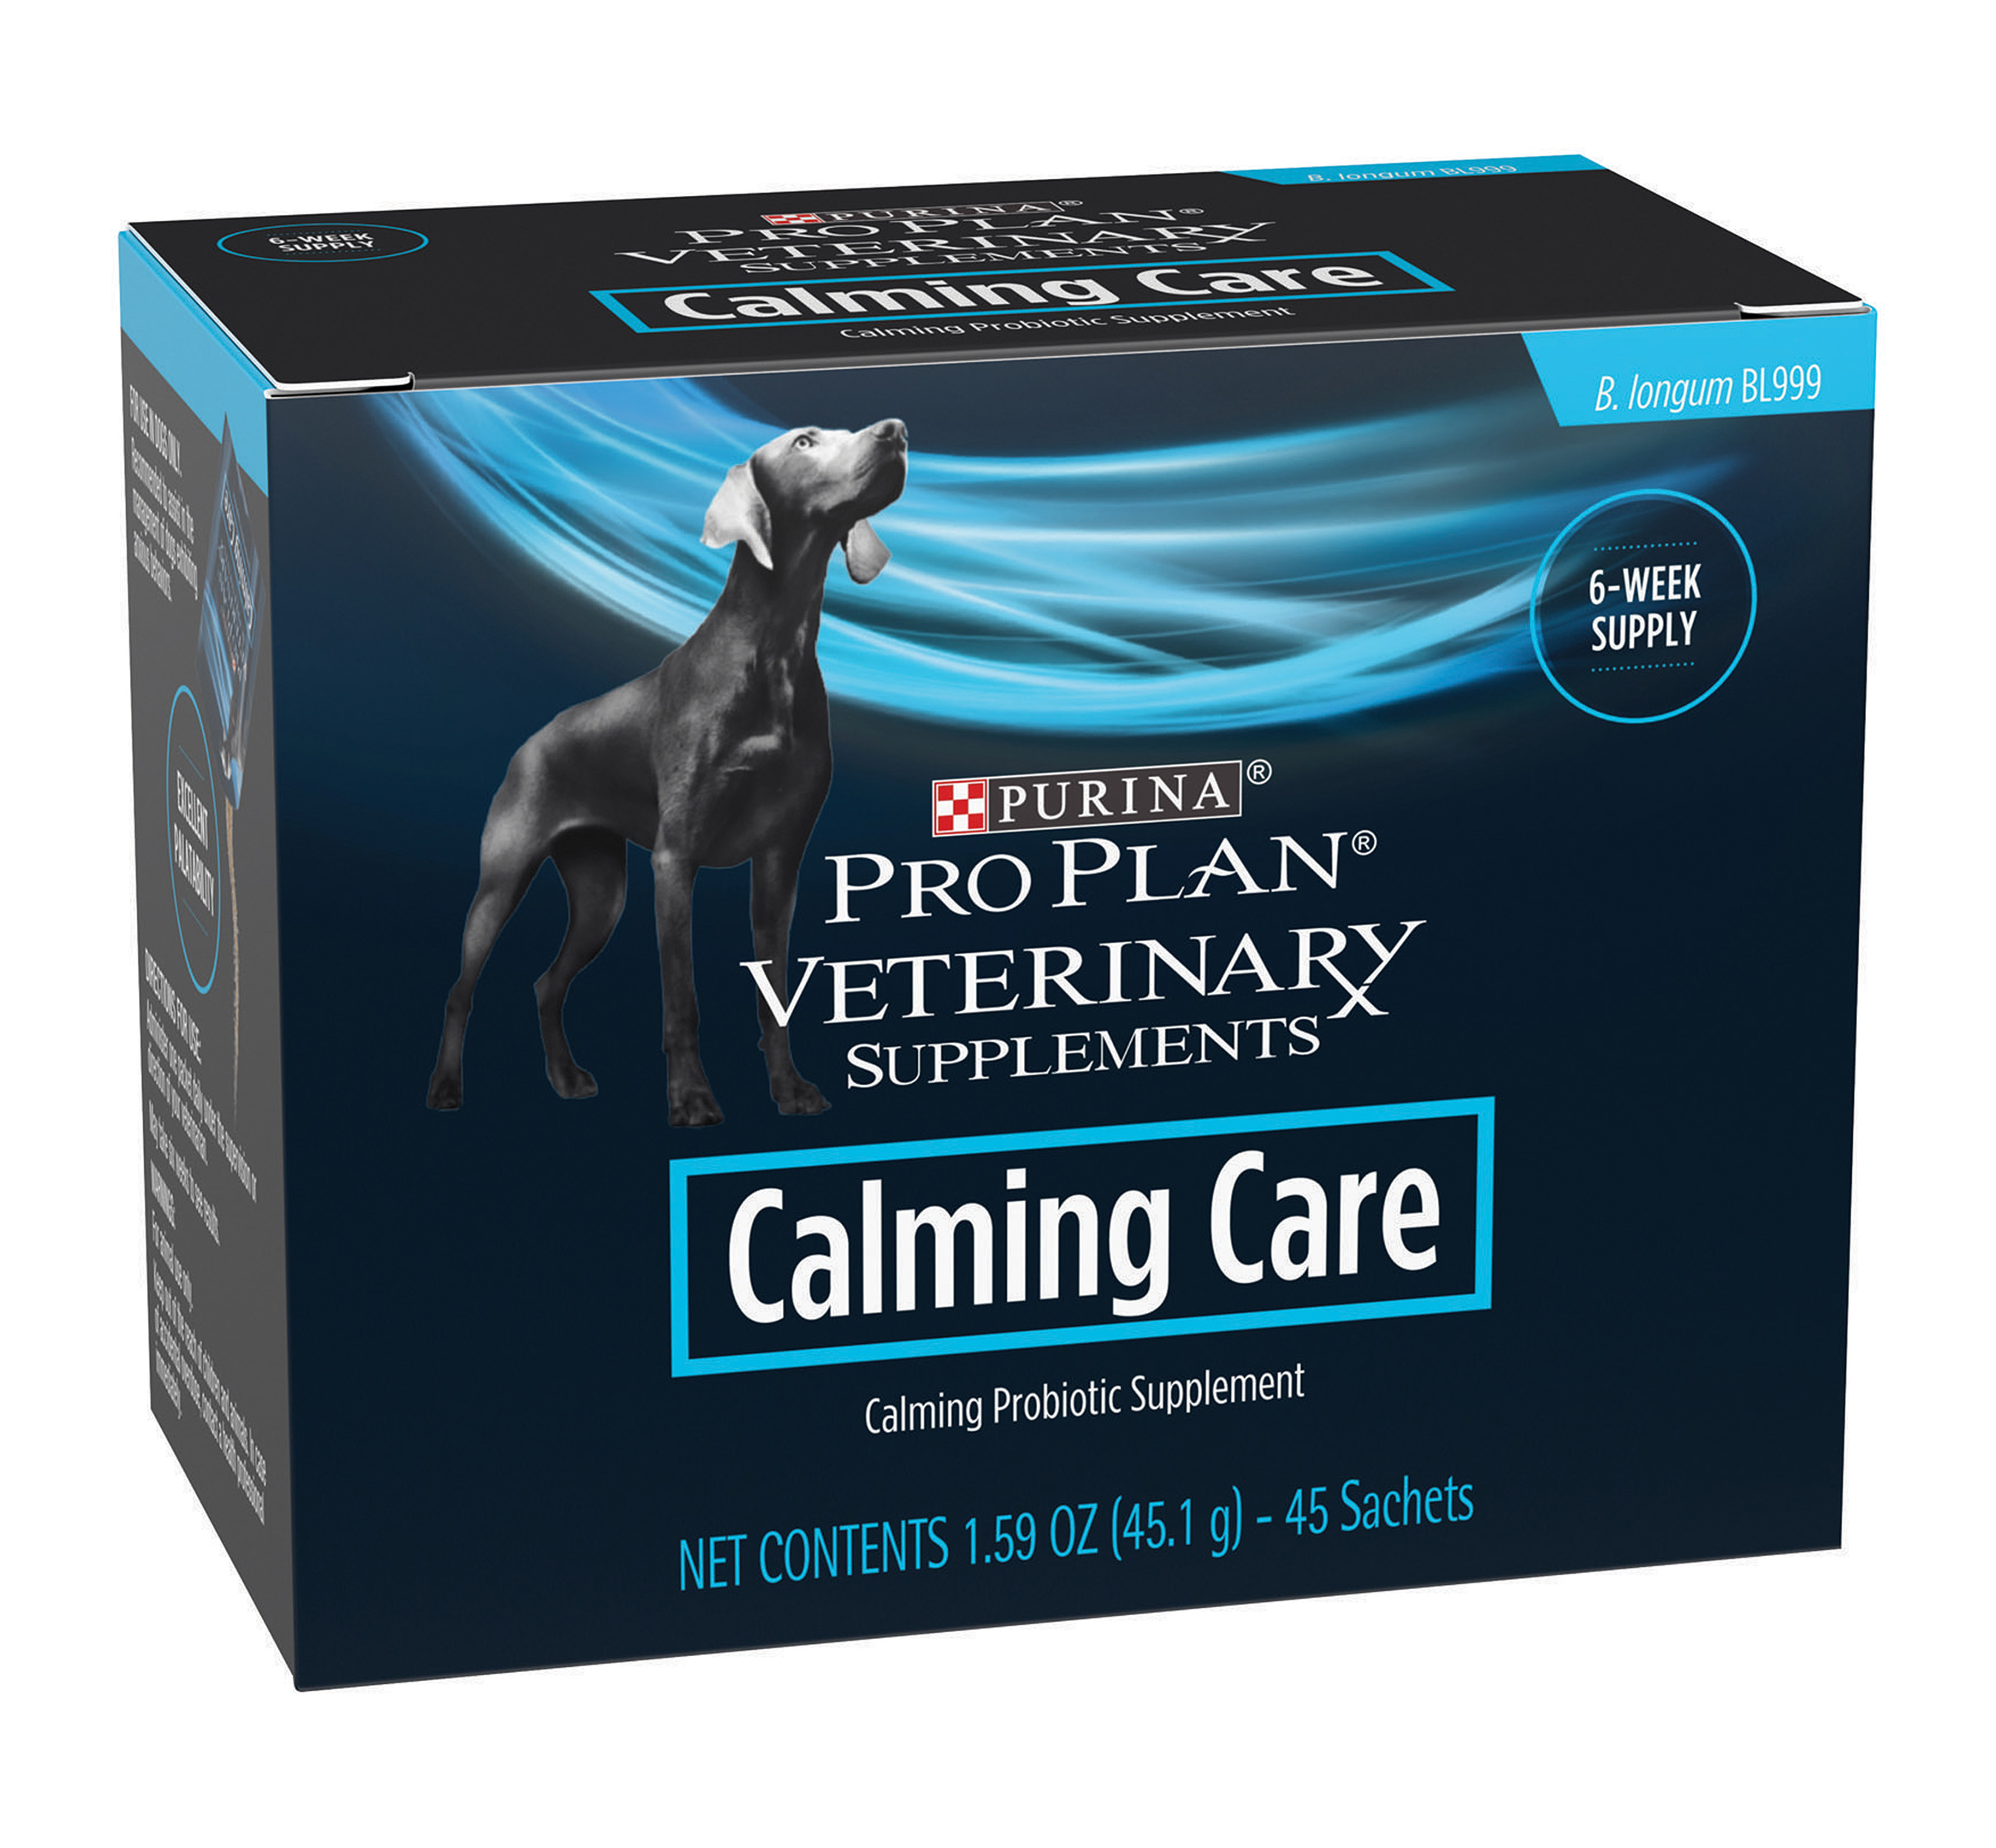 Purina® Calming Care Canine Probiotic Supplement